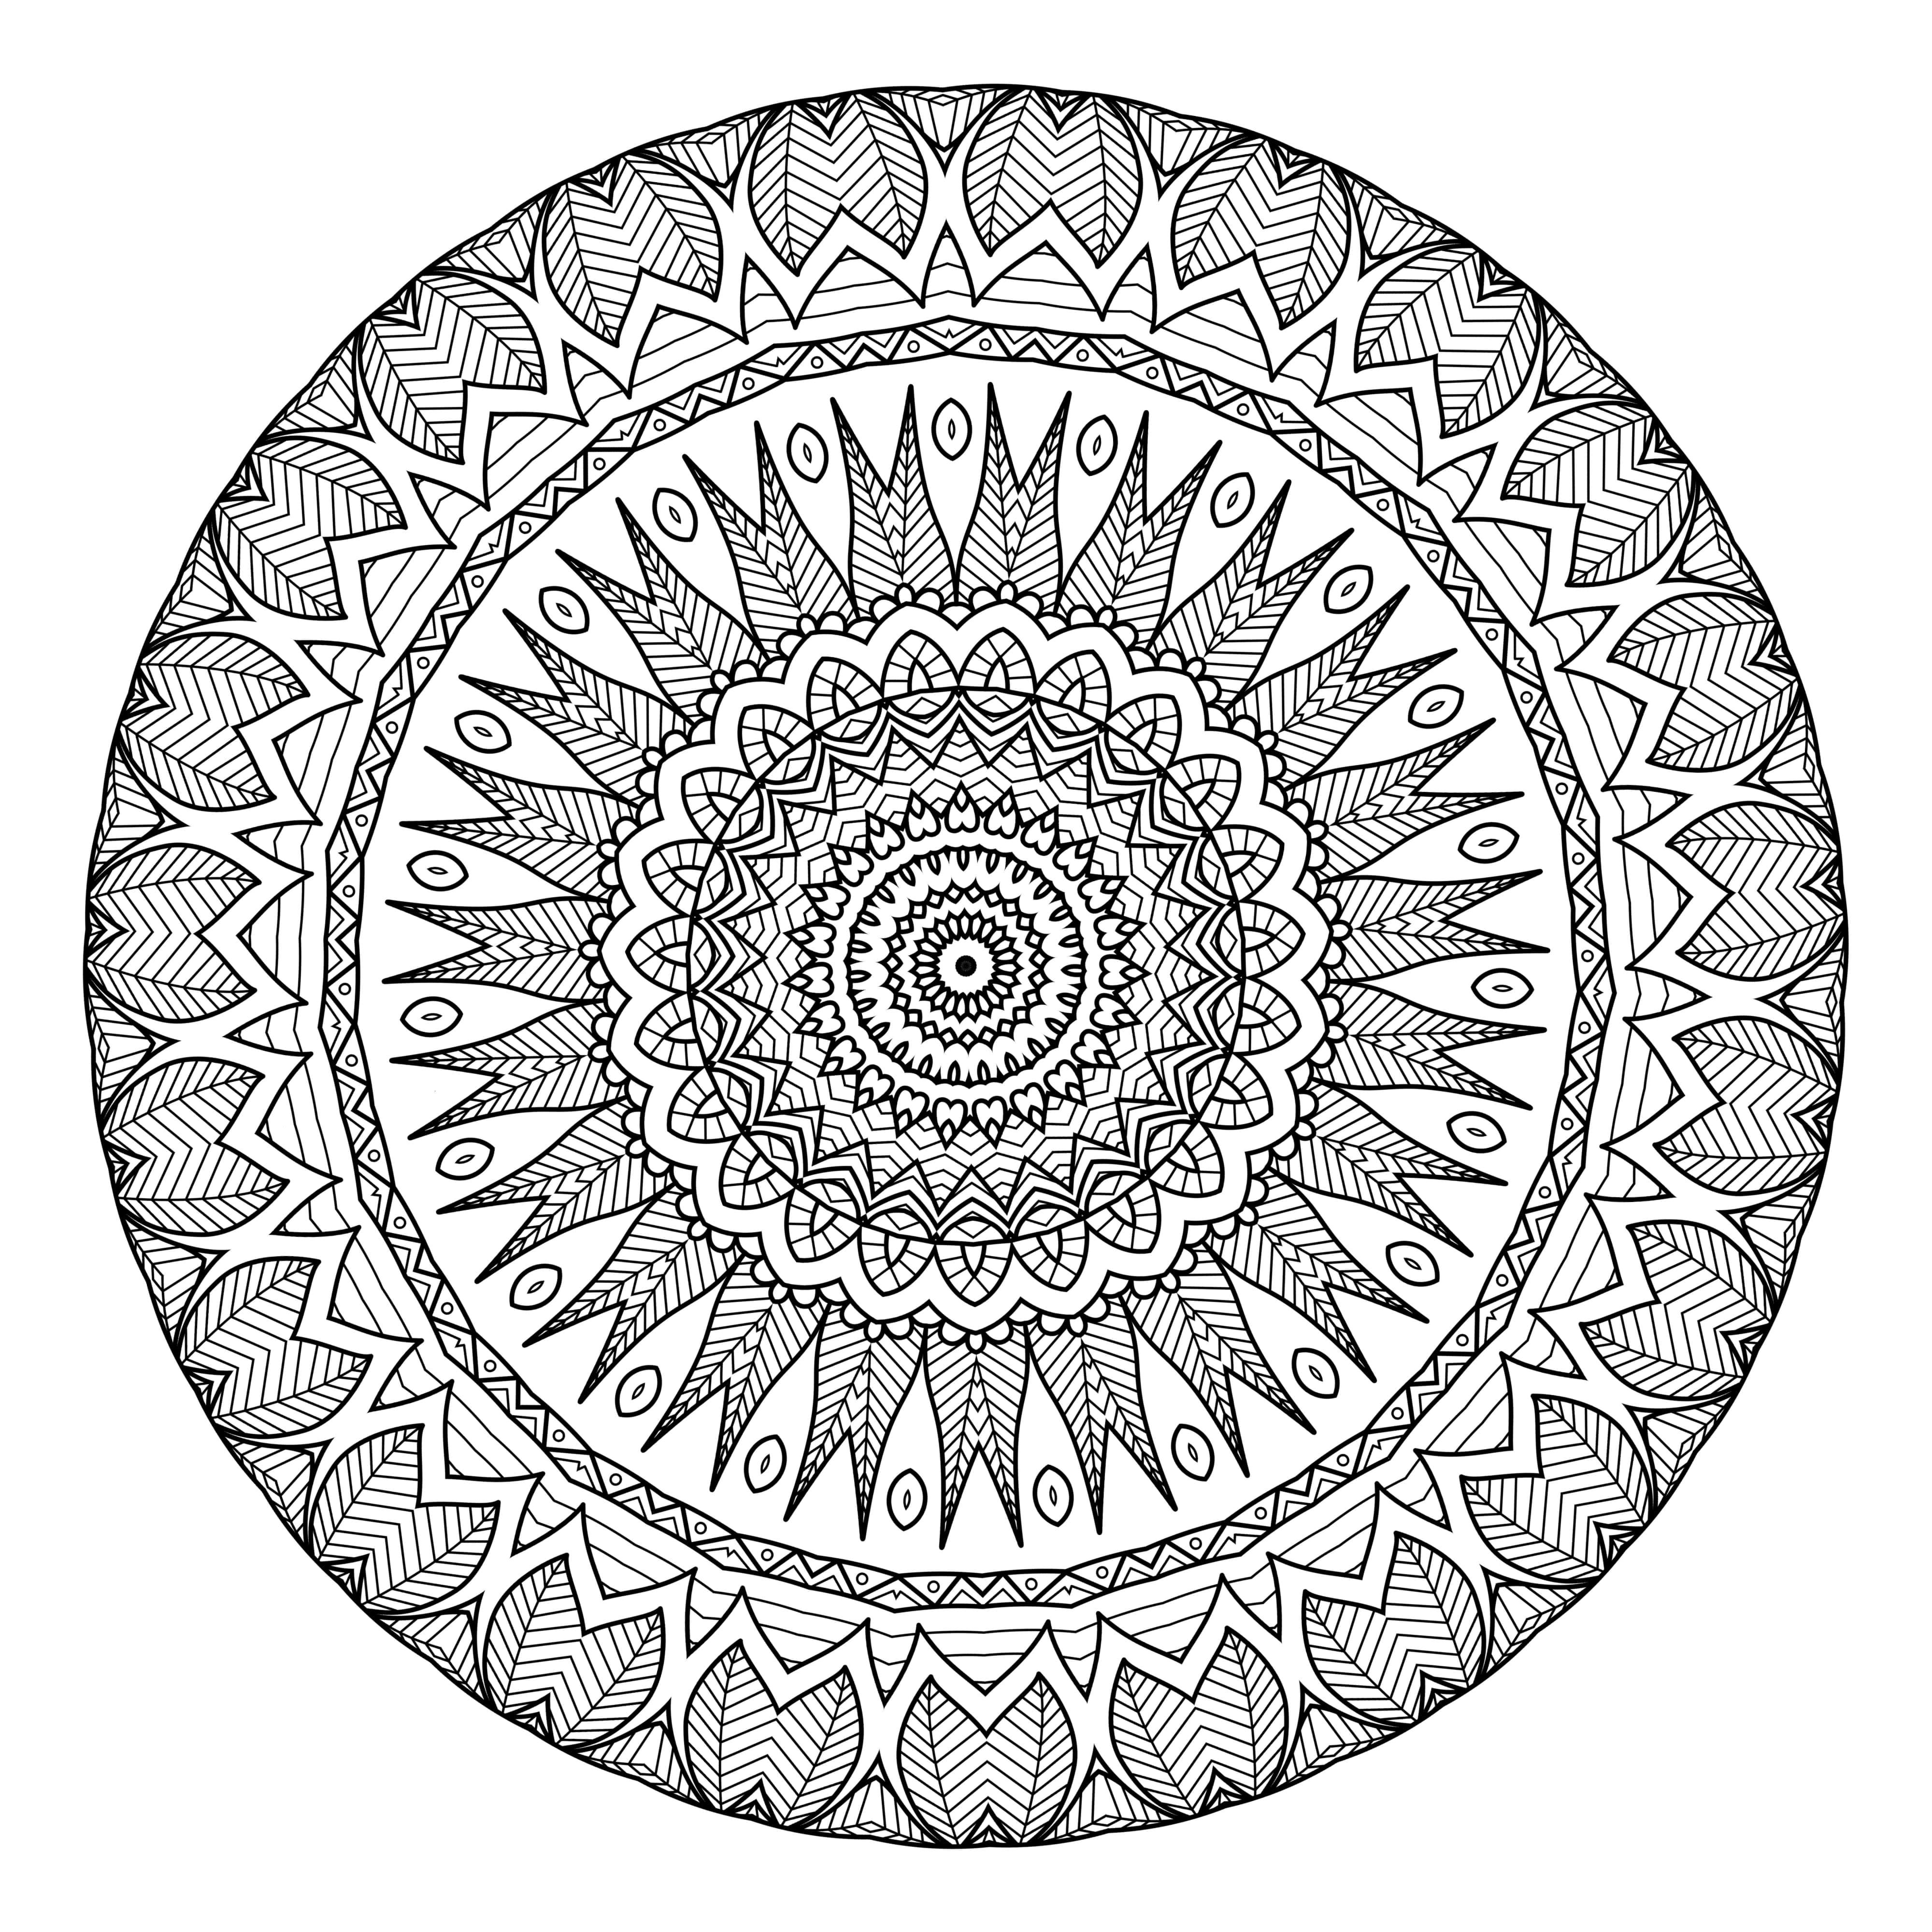 Lifestyle And Productivity The Maven Circle Mandala Coloring Pages Free Printable Coloring Pages Mandala Coloring Books